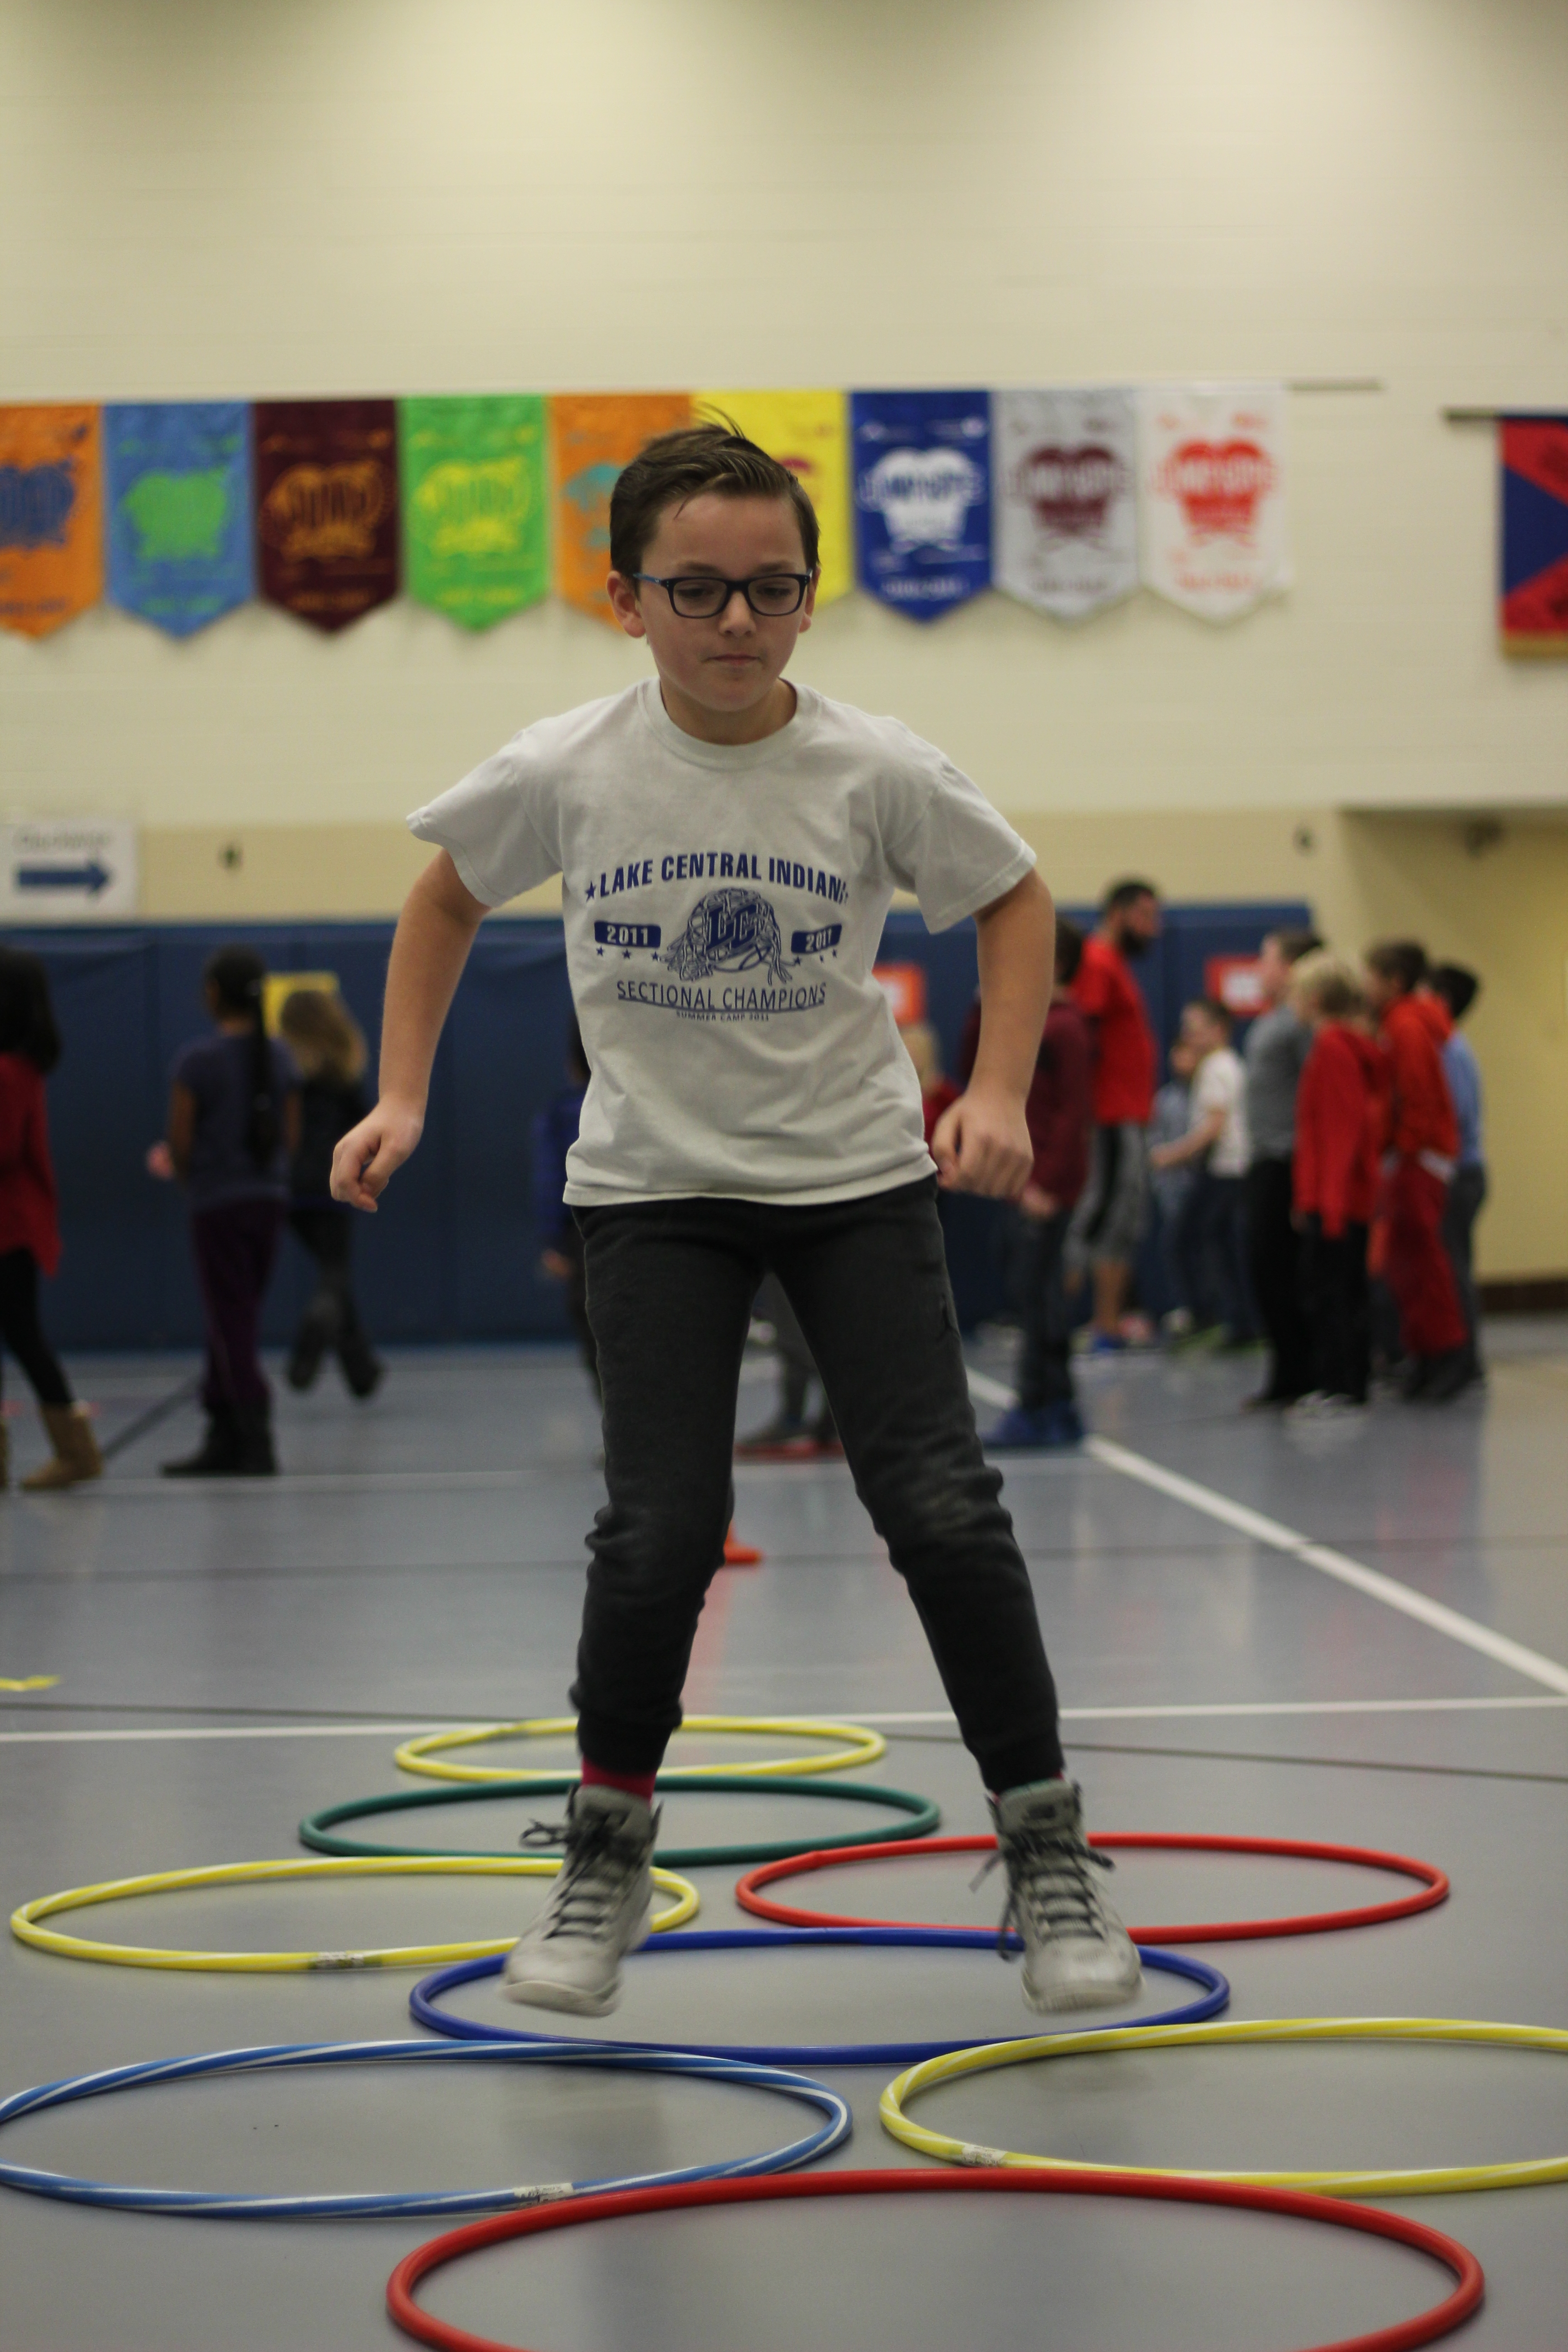 A student participates in the obstacle course